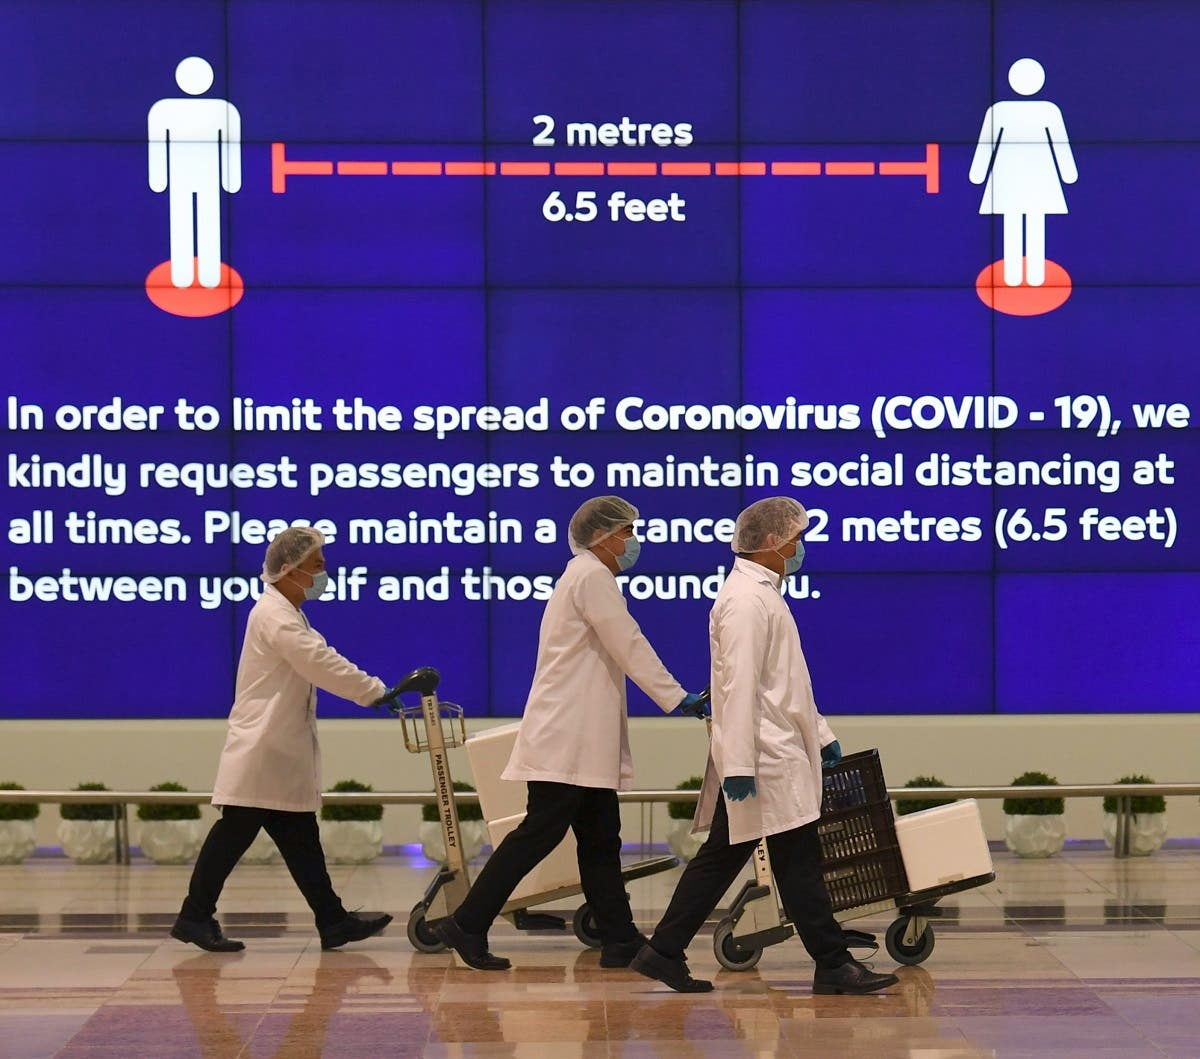 Employees at Dubai International Airport, walk past a poster reminding passengers to keep a safe distance from each other, after the resumption of scheduled operations by the Emirati carrier Emirates airline, amid the ongoing novel coronavirus pandemic crisis, on May 22, 2020. (AFP)